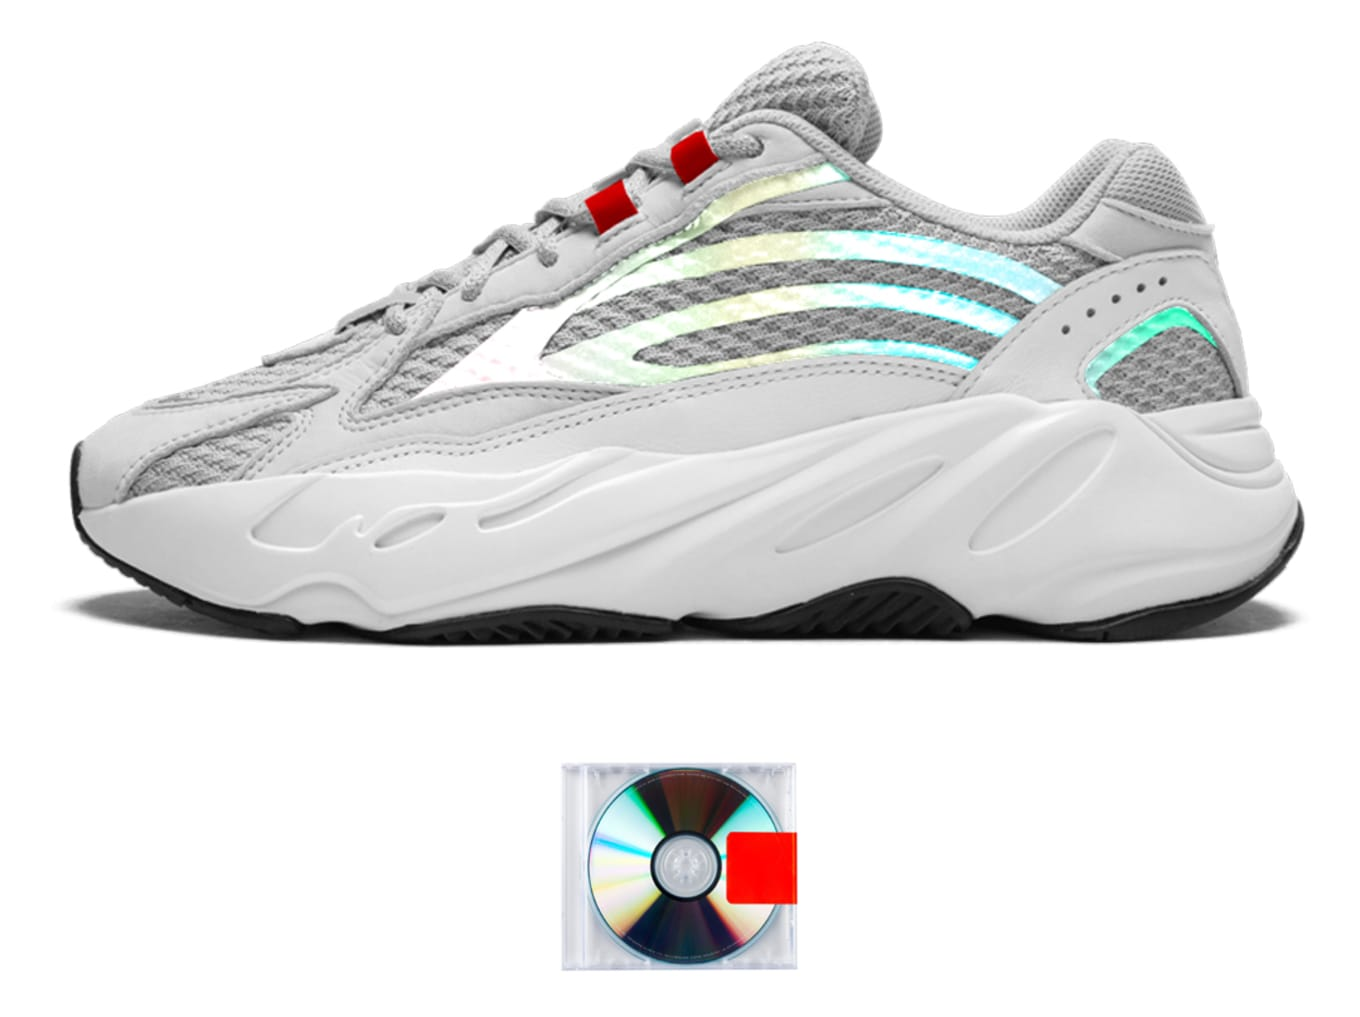 buy popular f9dab 6829f Kanye West Yeezy 700 Albums | Sole Collector